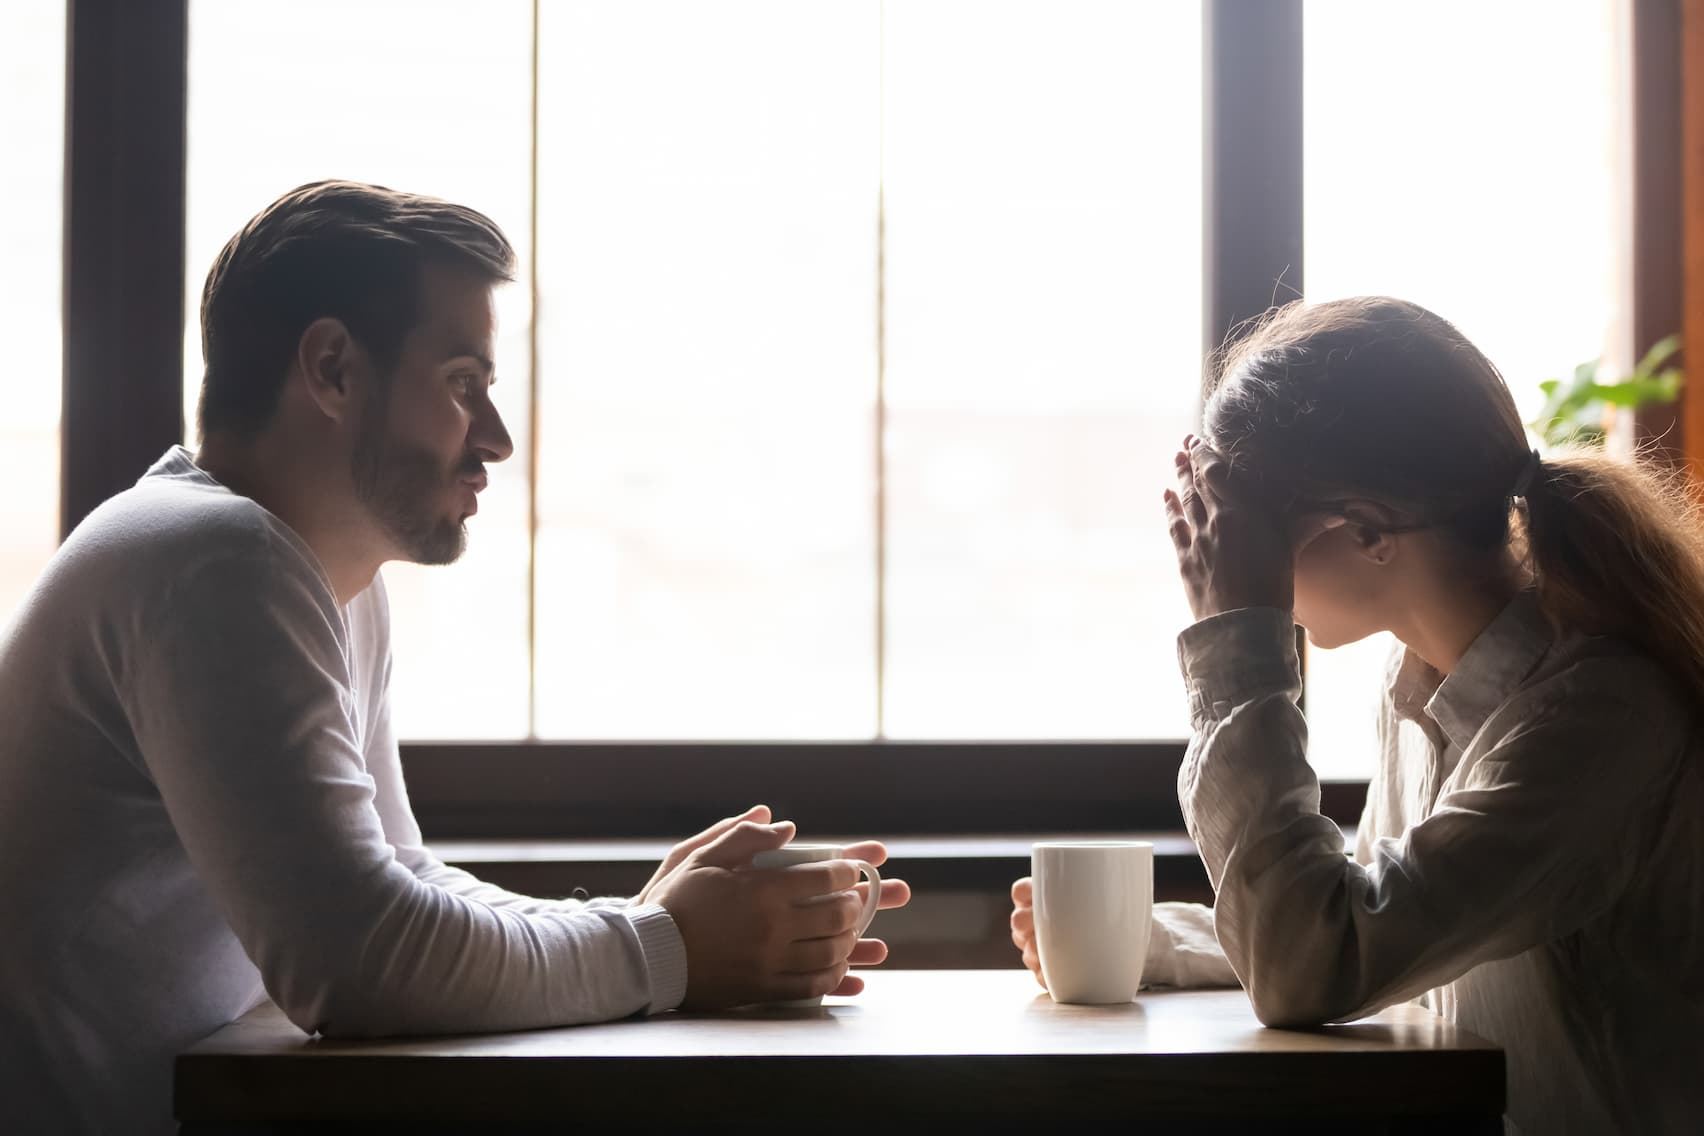 Not Satisfied In Your Relationship? Here's Why That May Be